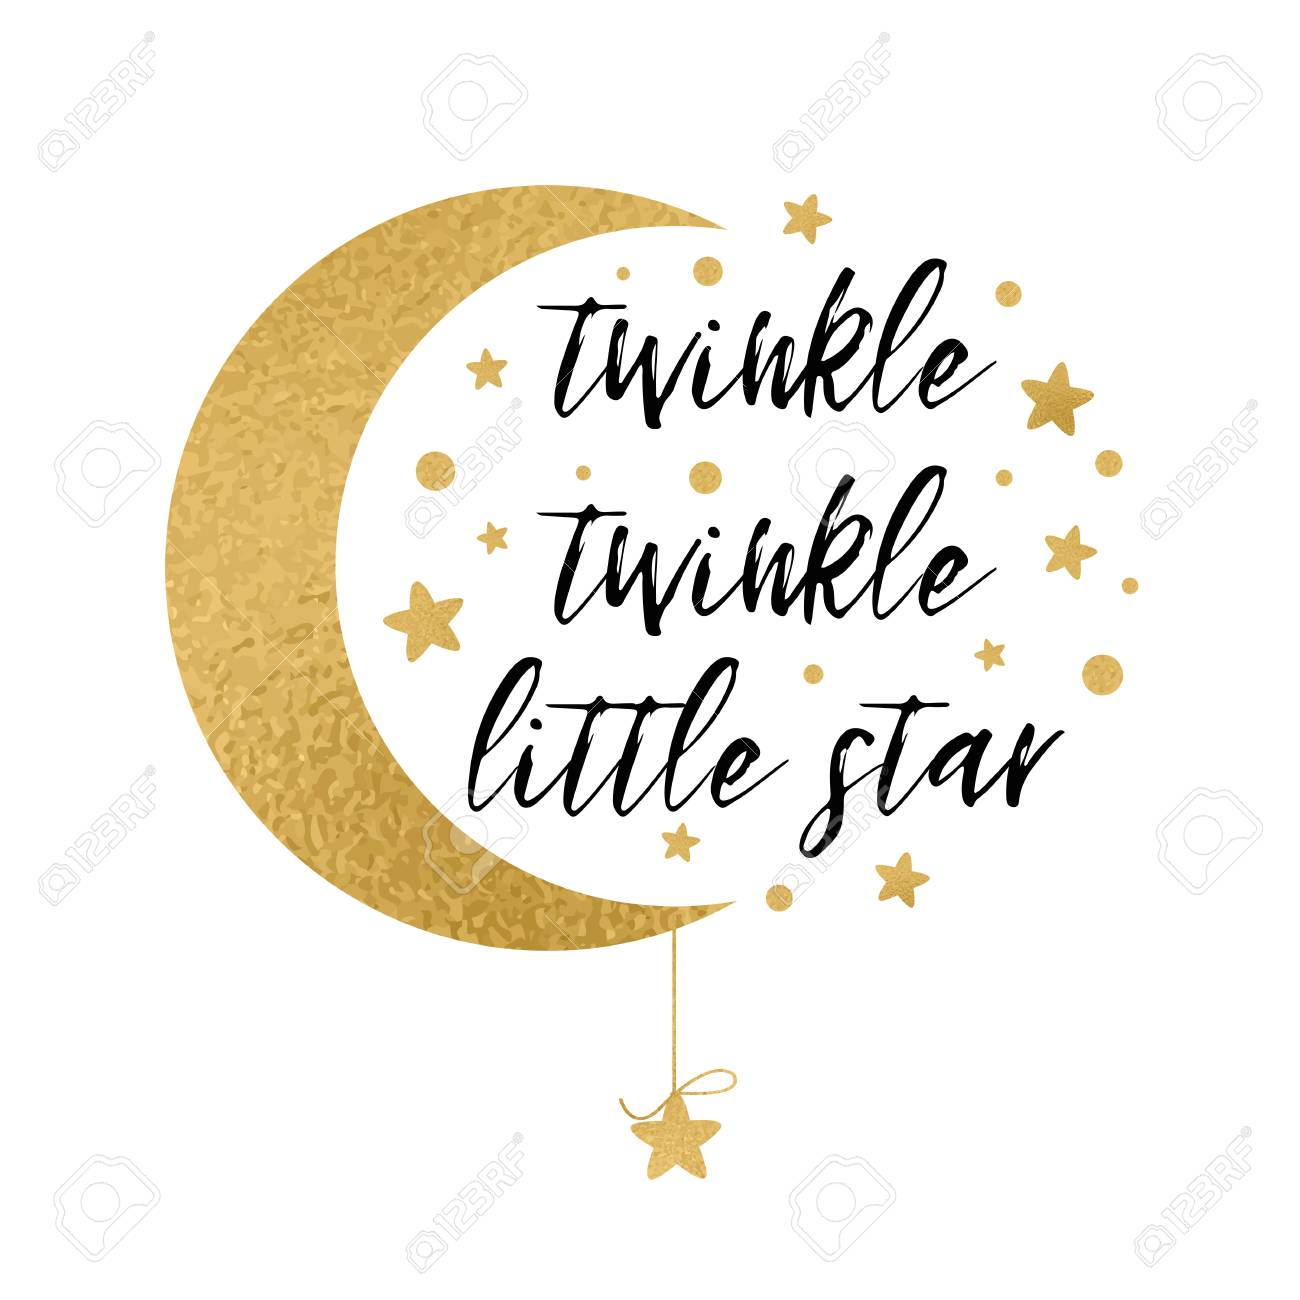 Twinkle twinkle little star text with gold star and moon for baby shower card design template - 110093740